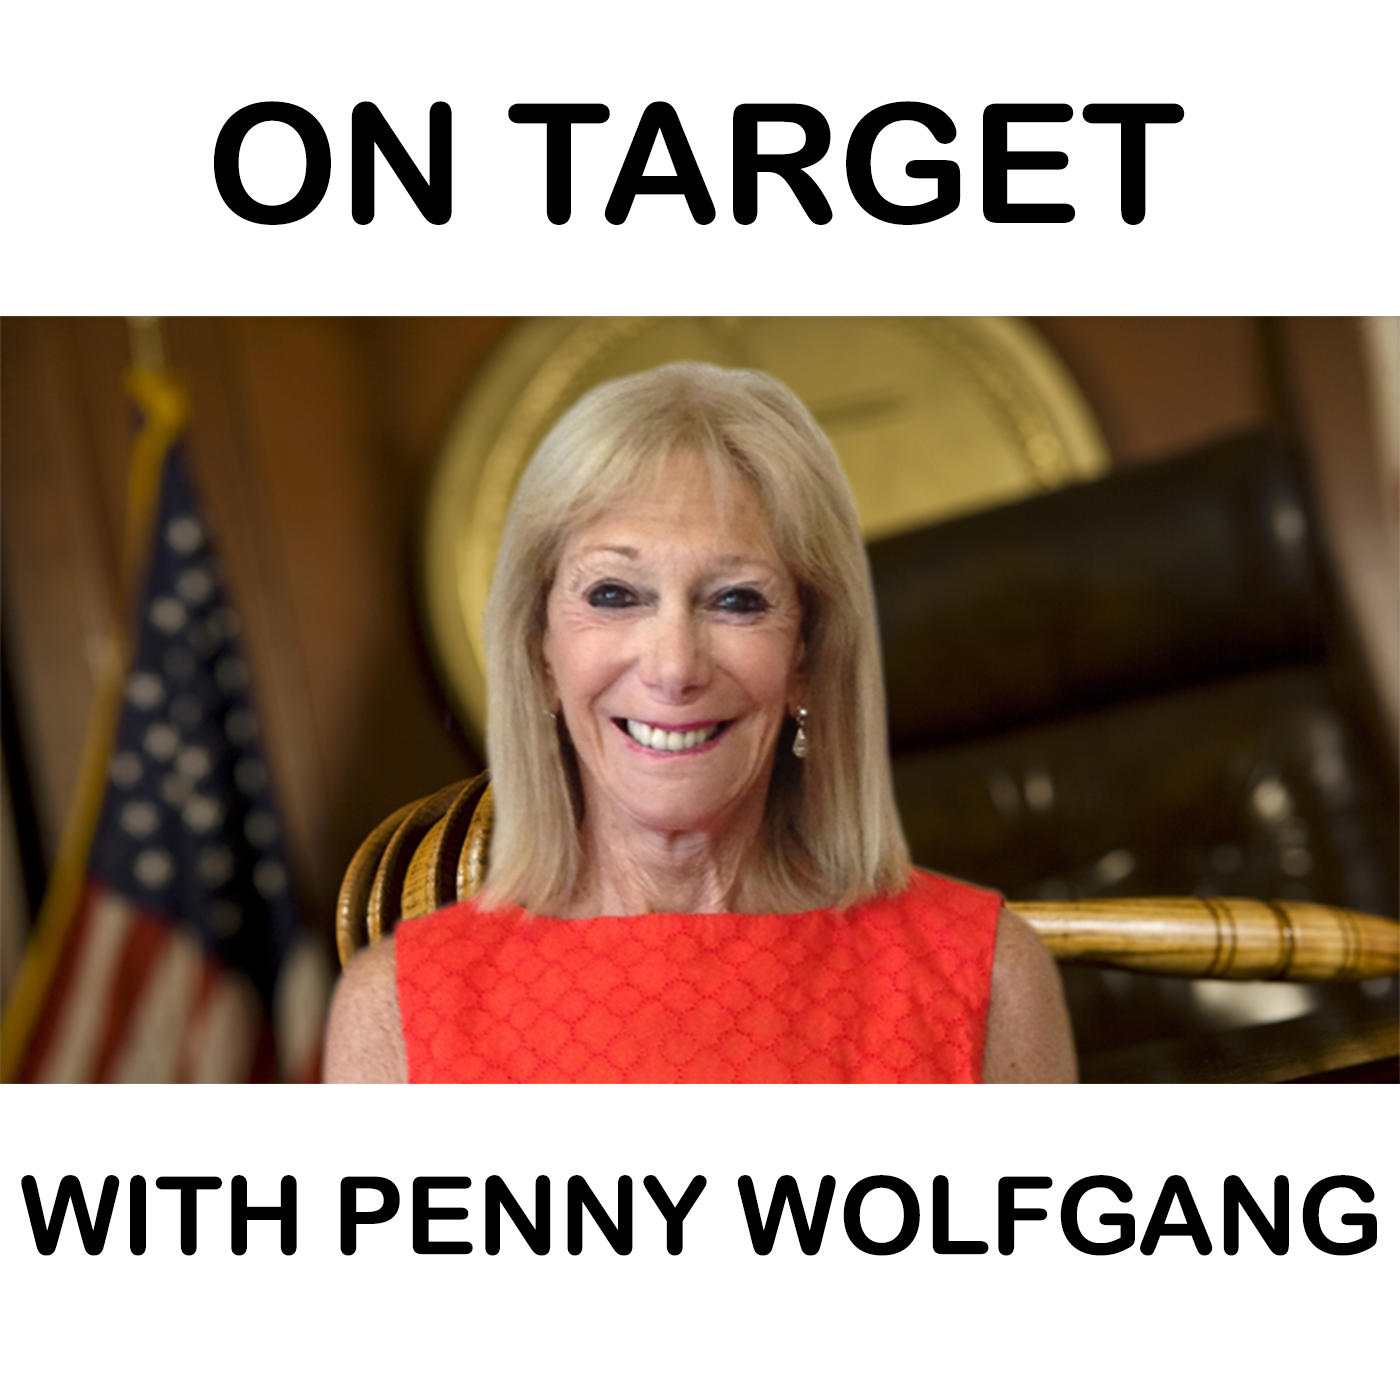 On Target with Penny Wolfgang